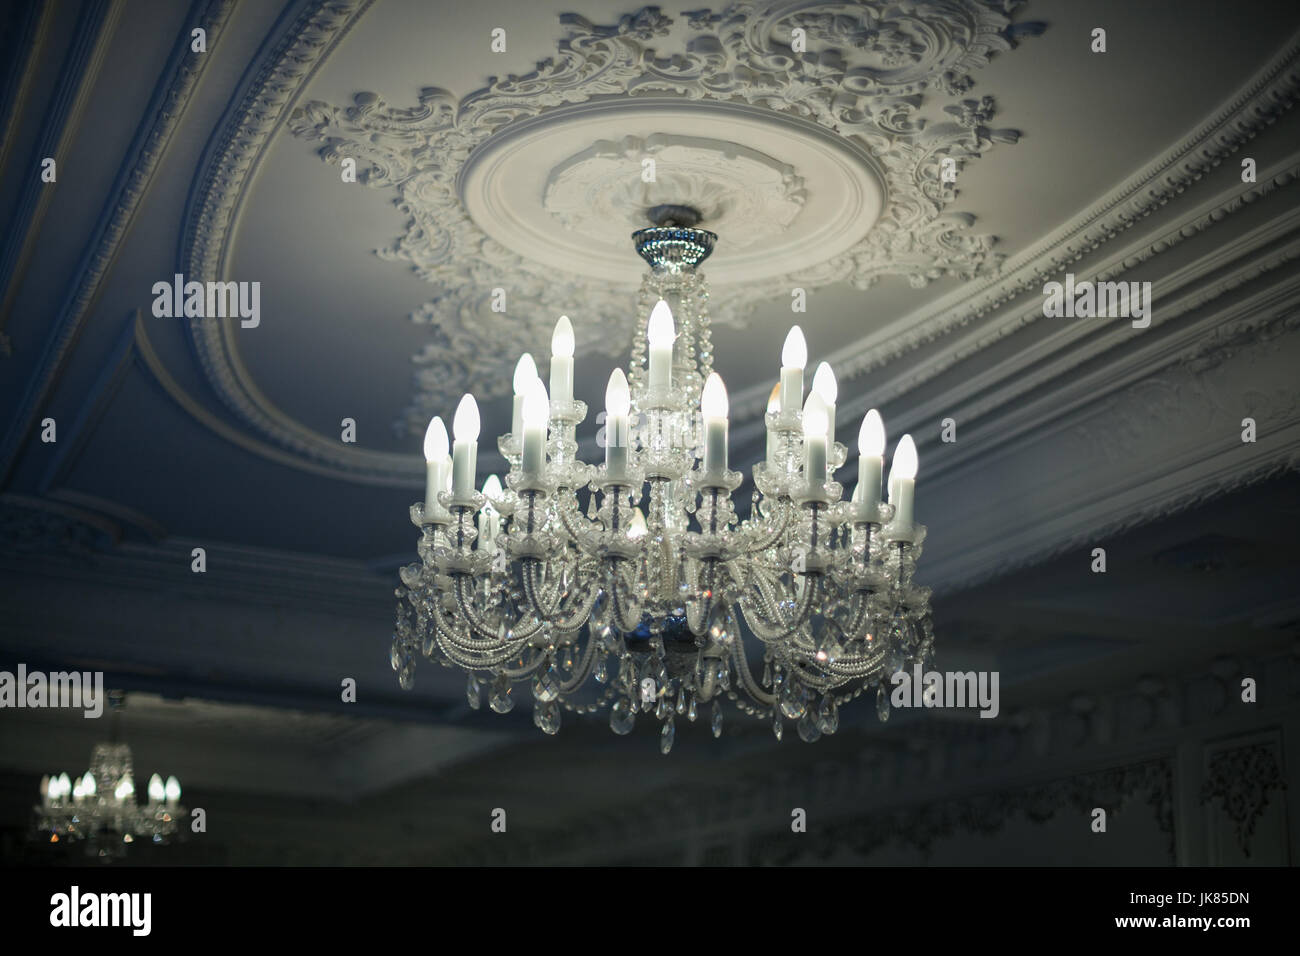 Beautiful antique crystal chandelier hangs from the ceiling in the shadows - Stock Image